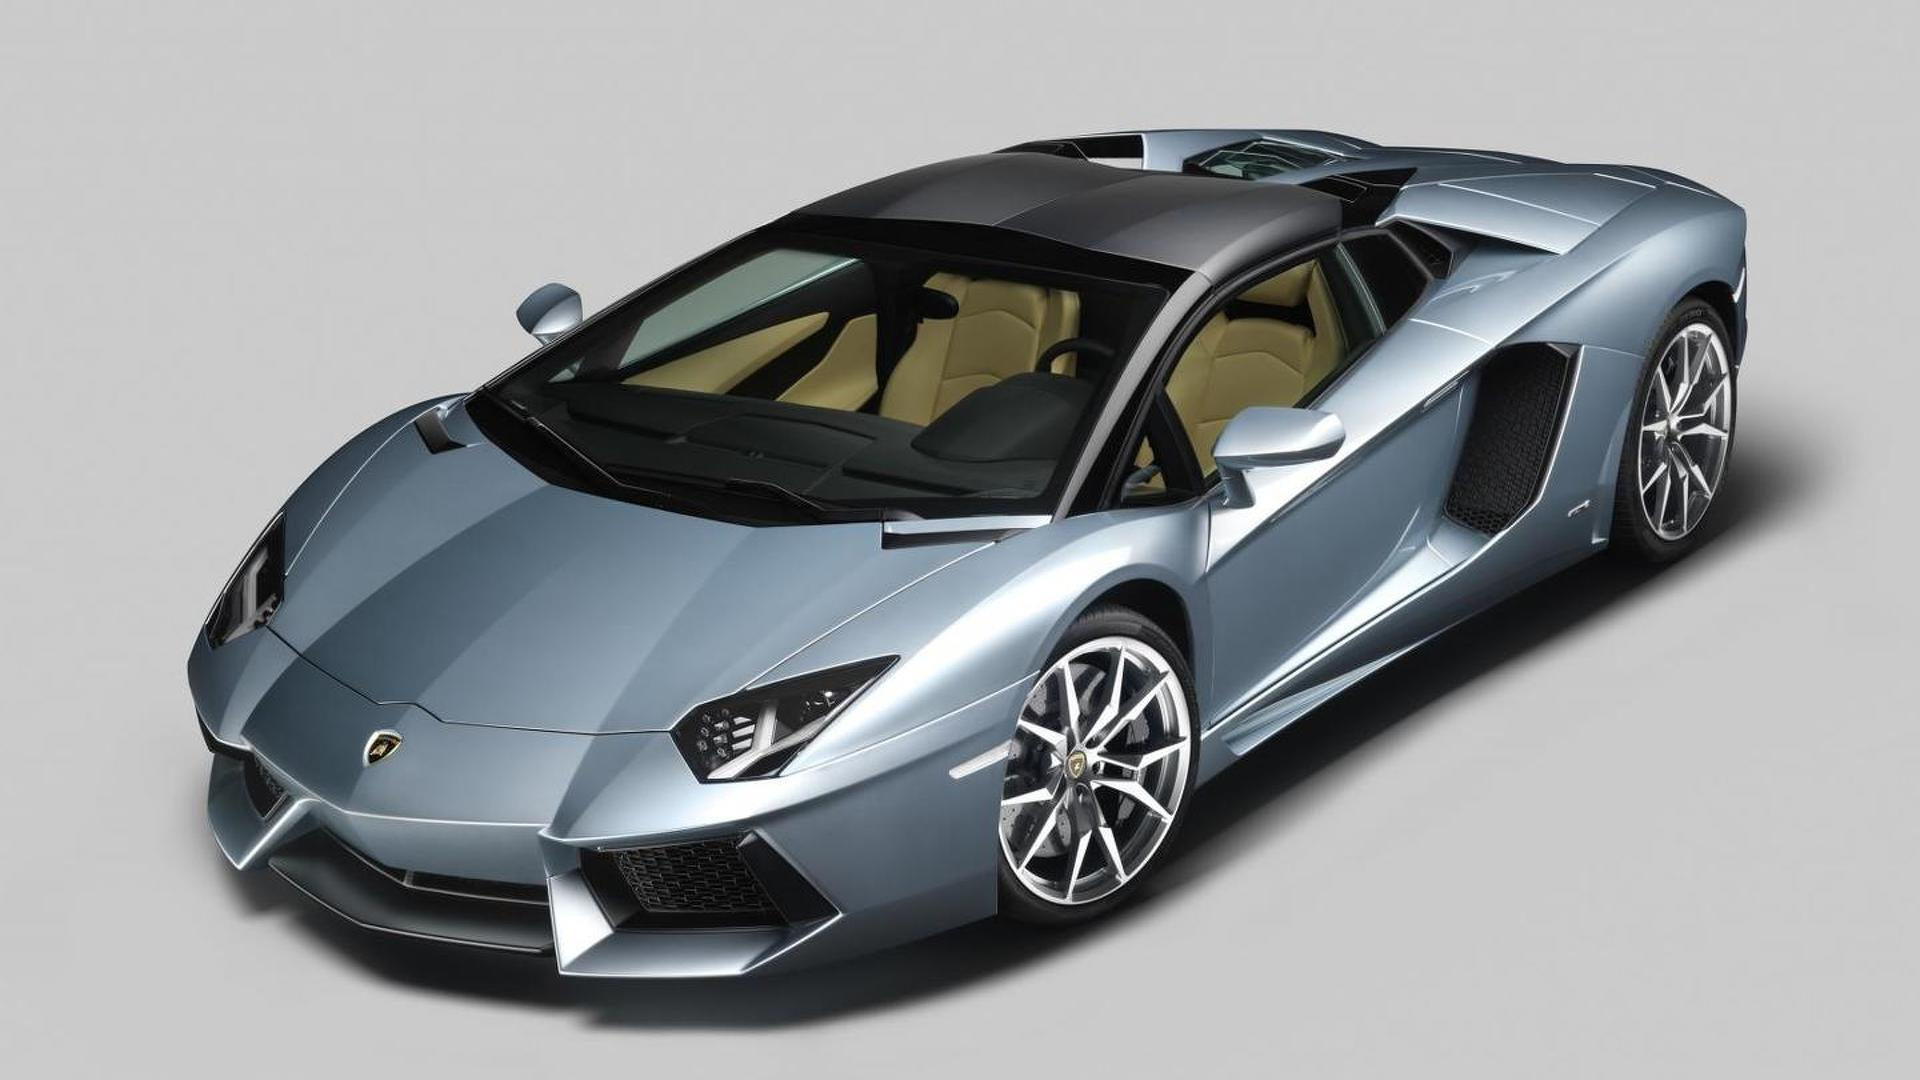 Watch how to install the Lamborghini Aventador Roadster roof [video]